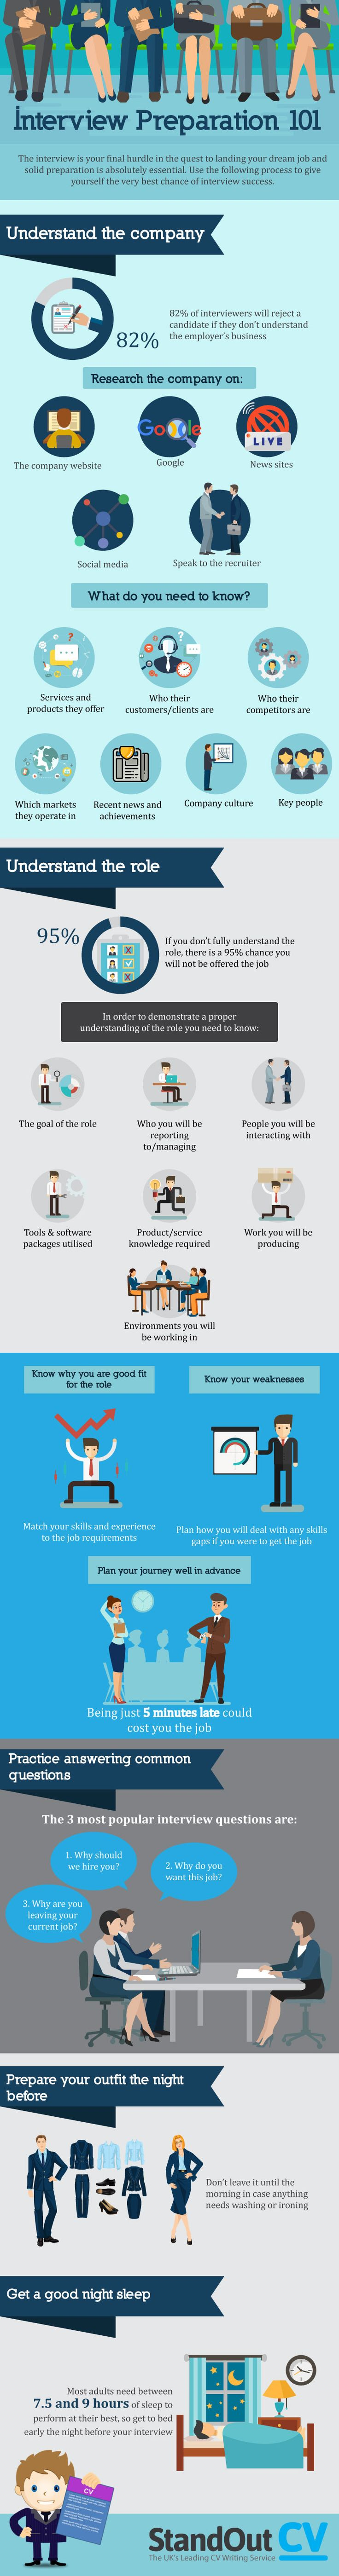 1000 ideas about hr interview questions hr interview preparation 101 infographic